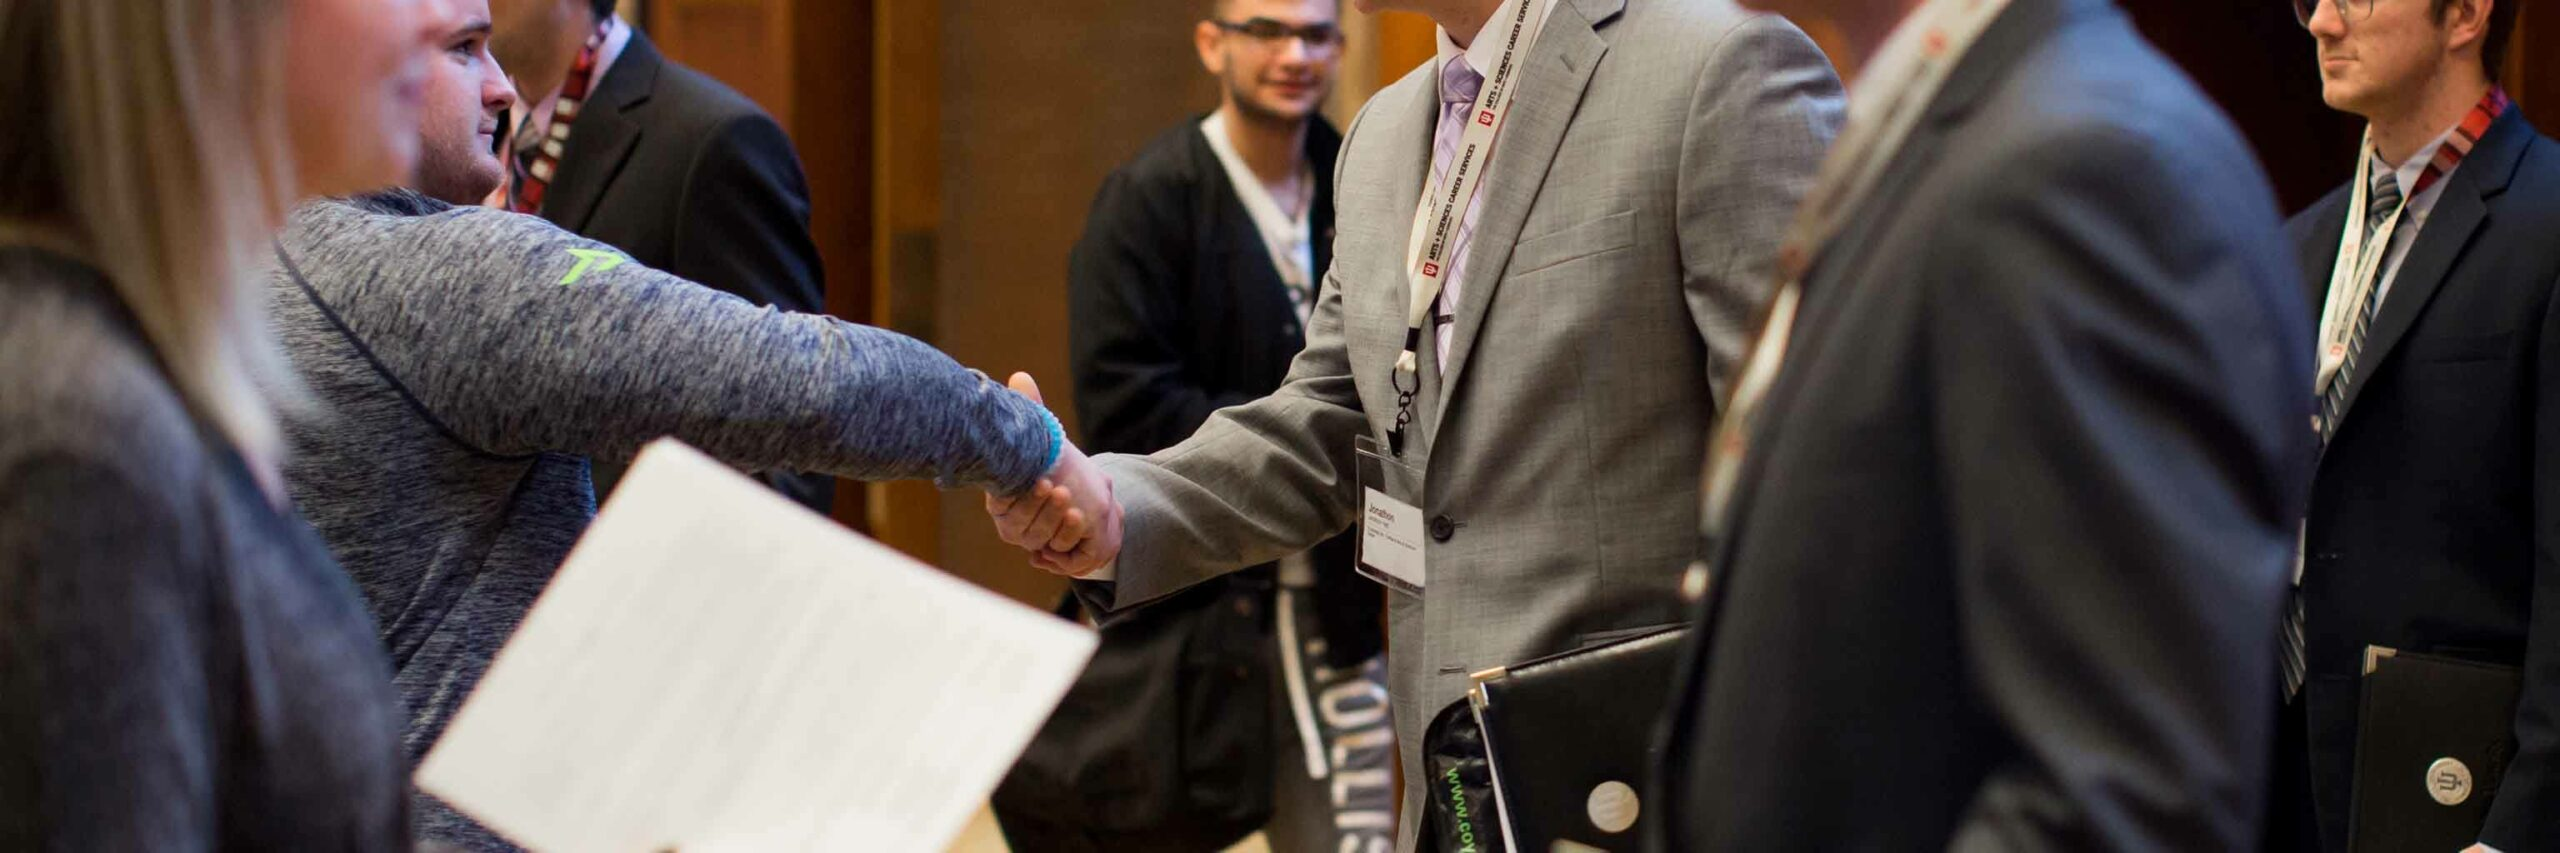 What to do After a Career Fair thumbnail image